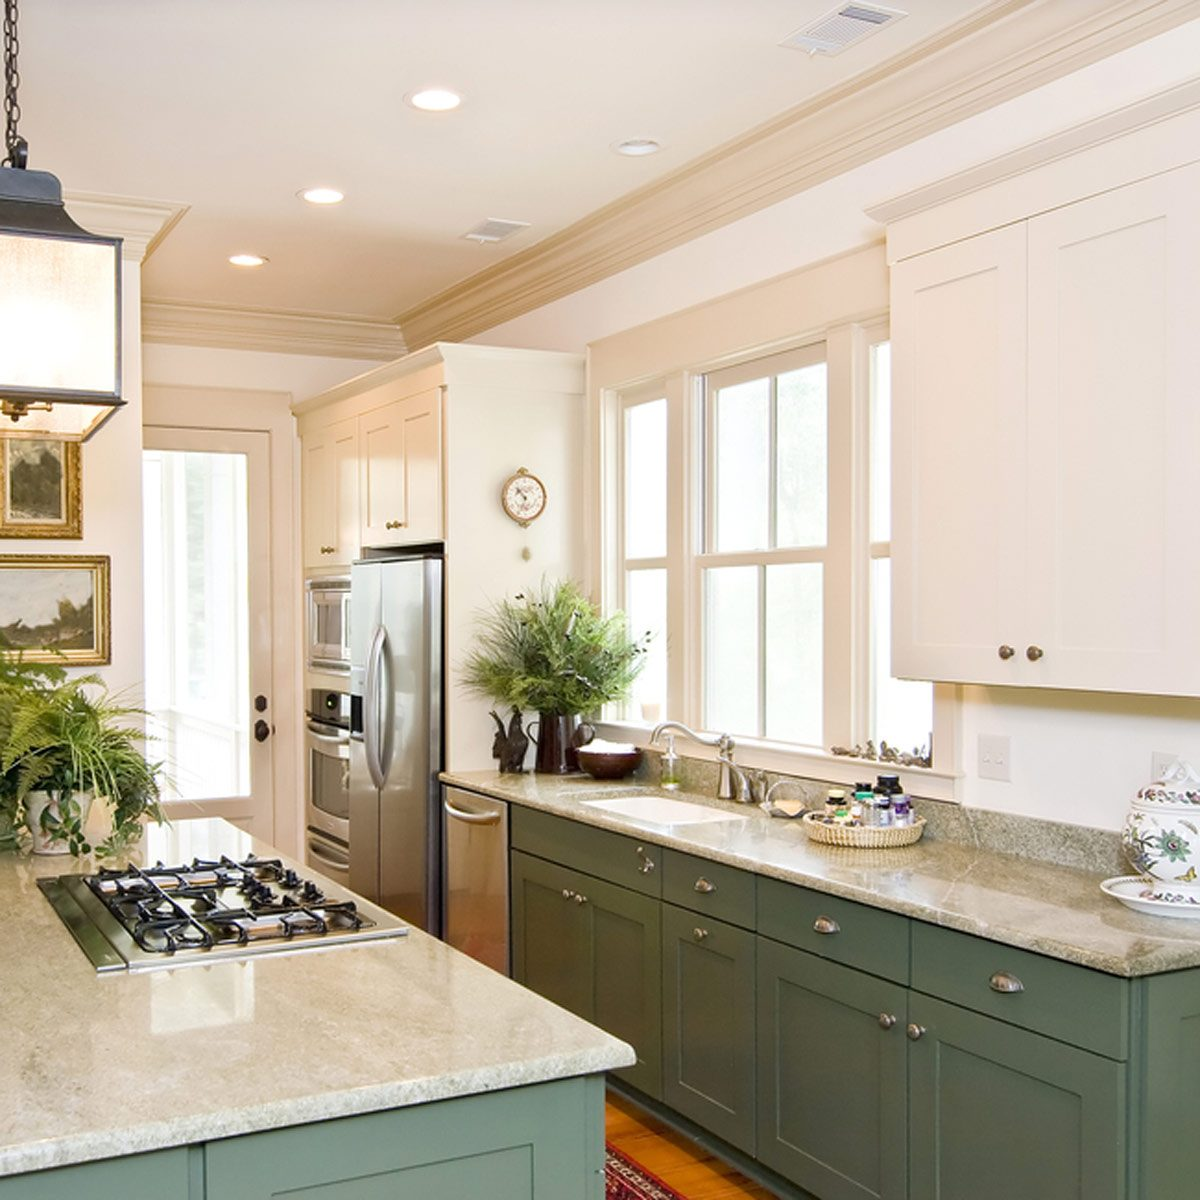 Shutterstock 45342838 kitchen cabinet trim